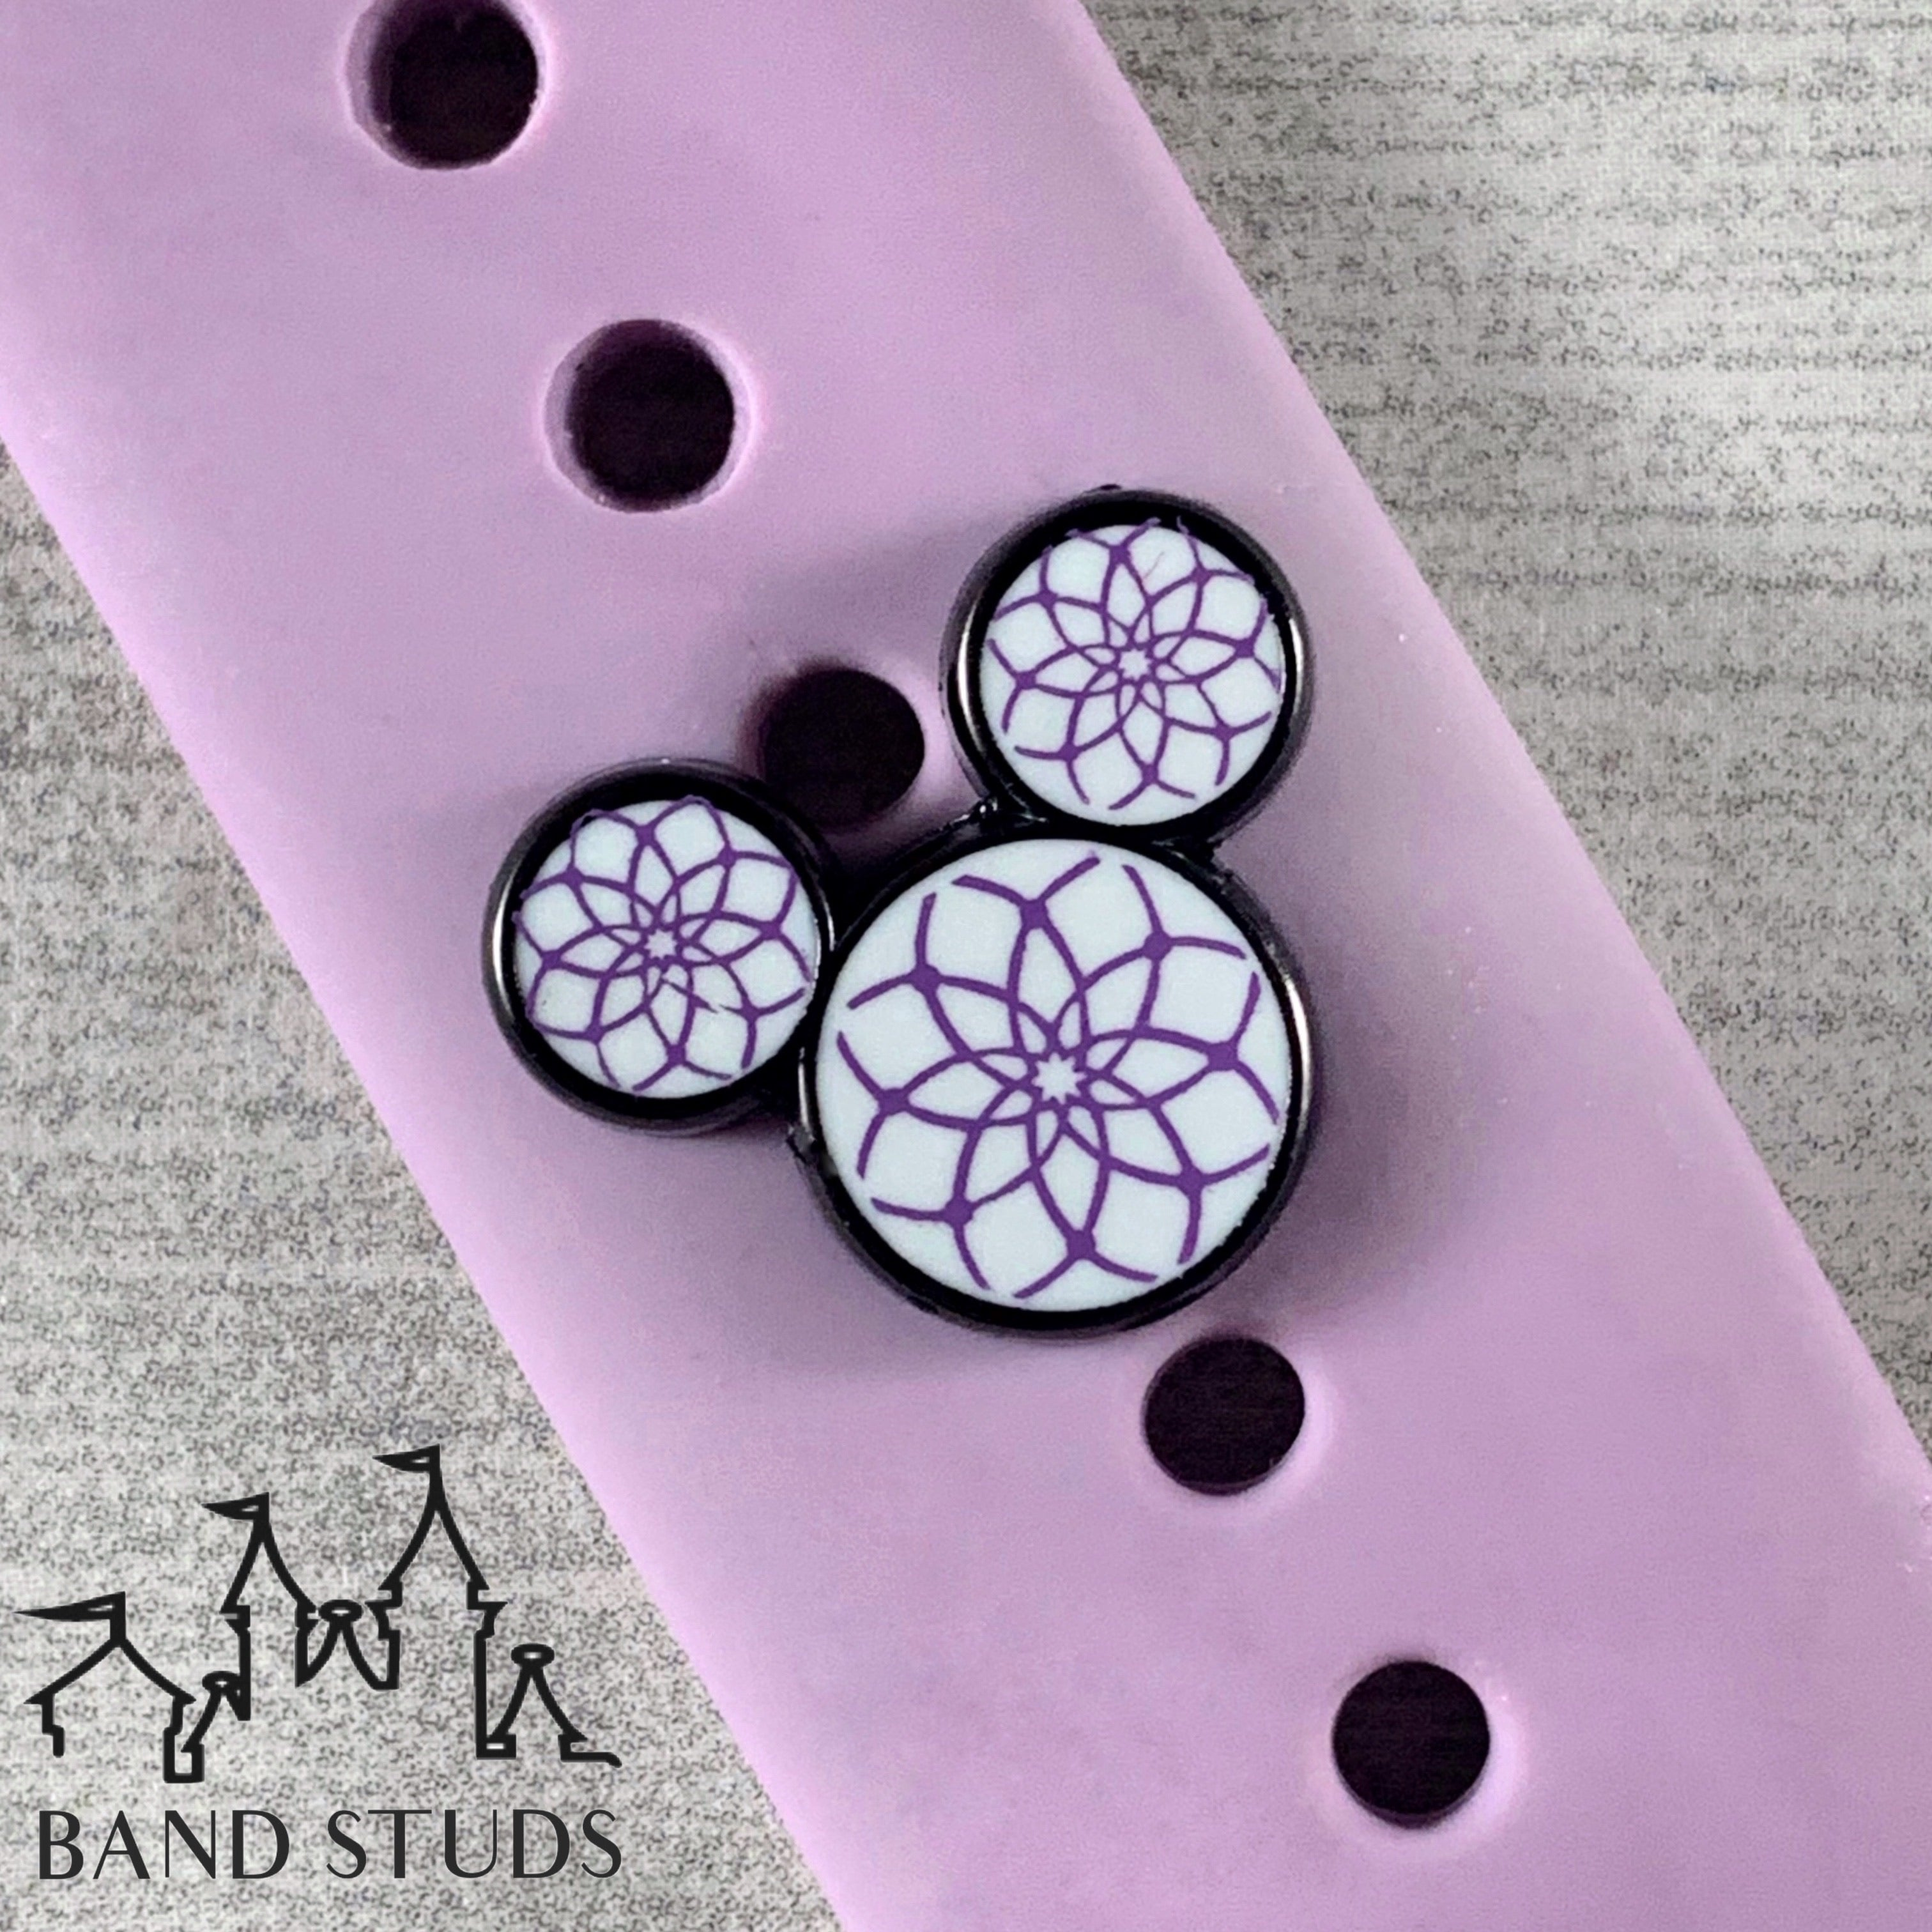 Band Stud - Dream Catcher Mouse READY TO SHIP